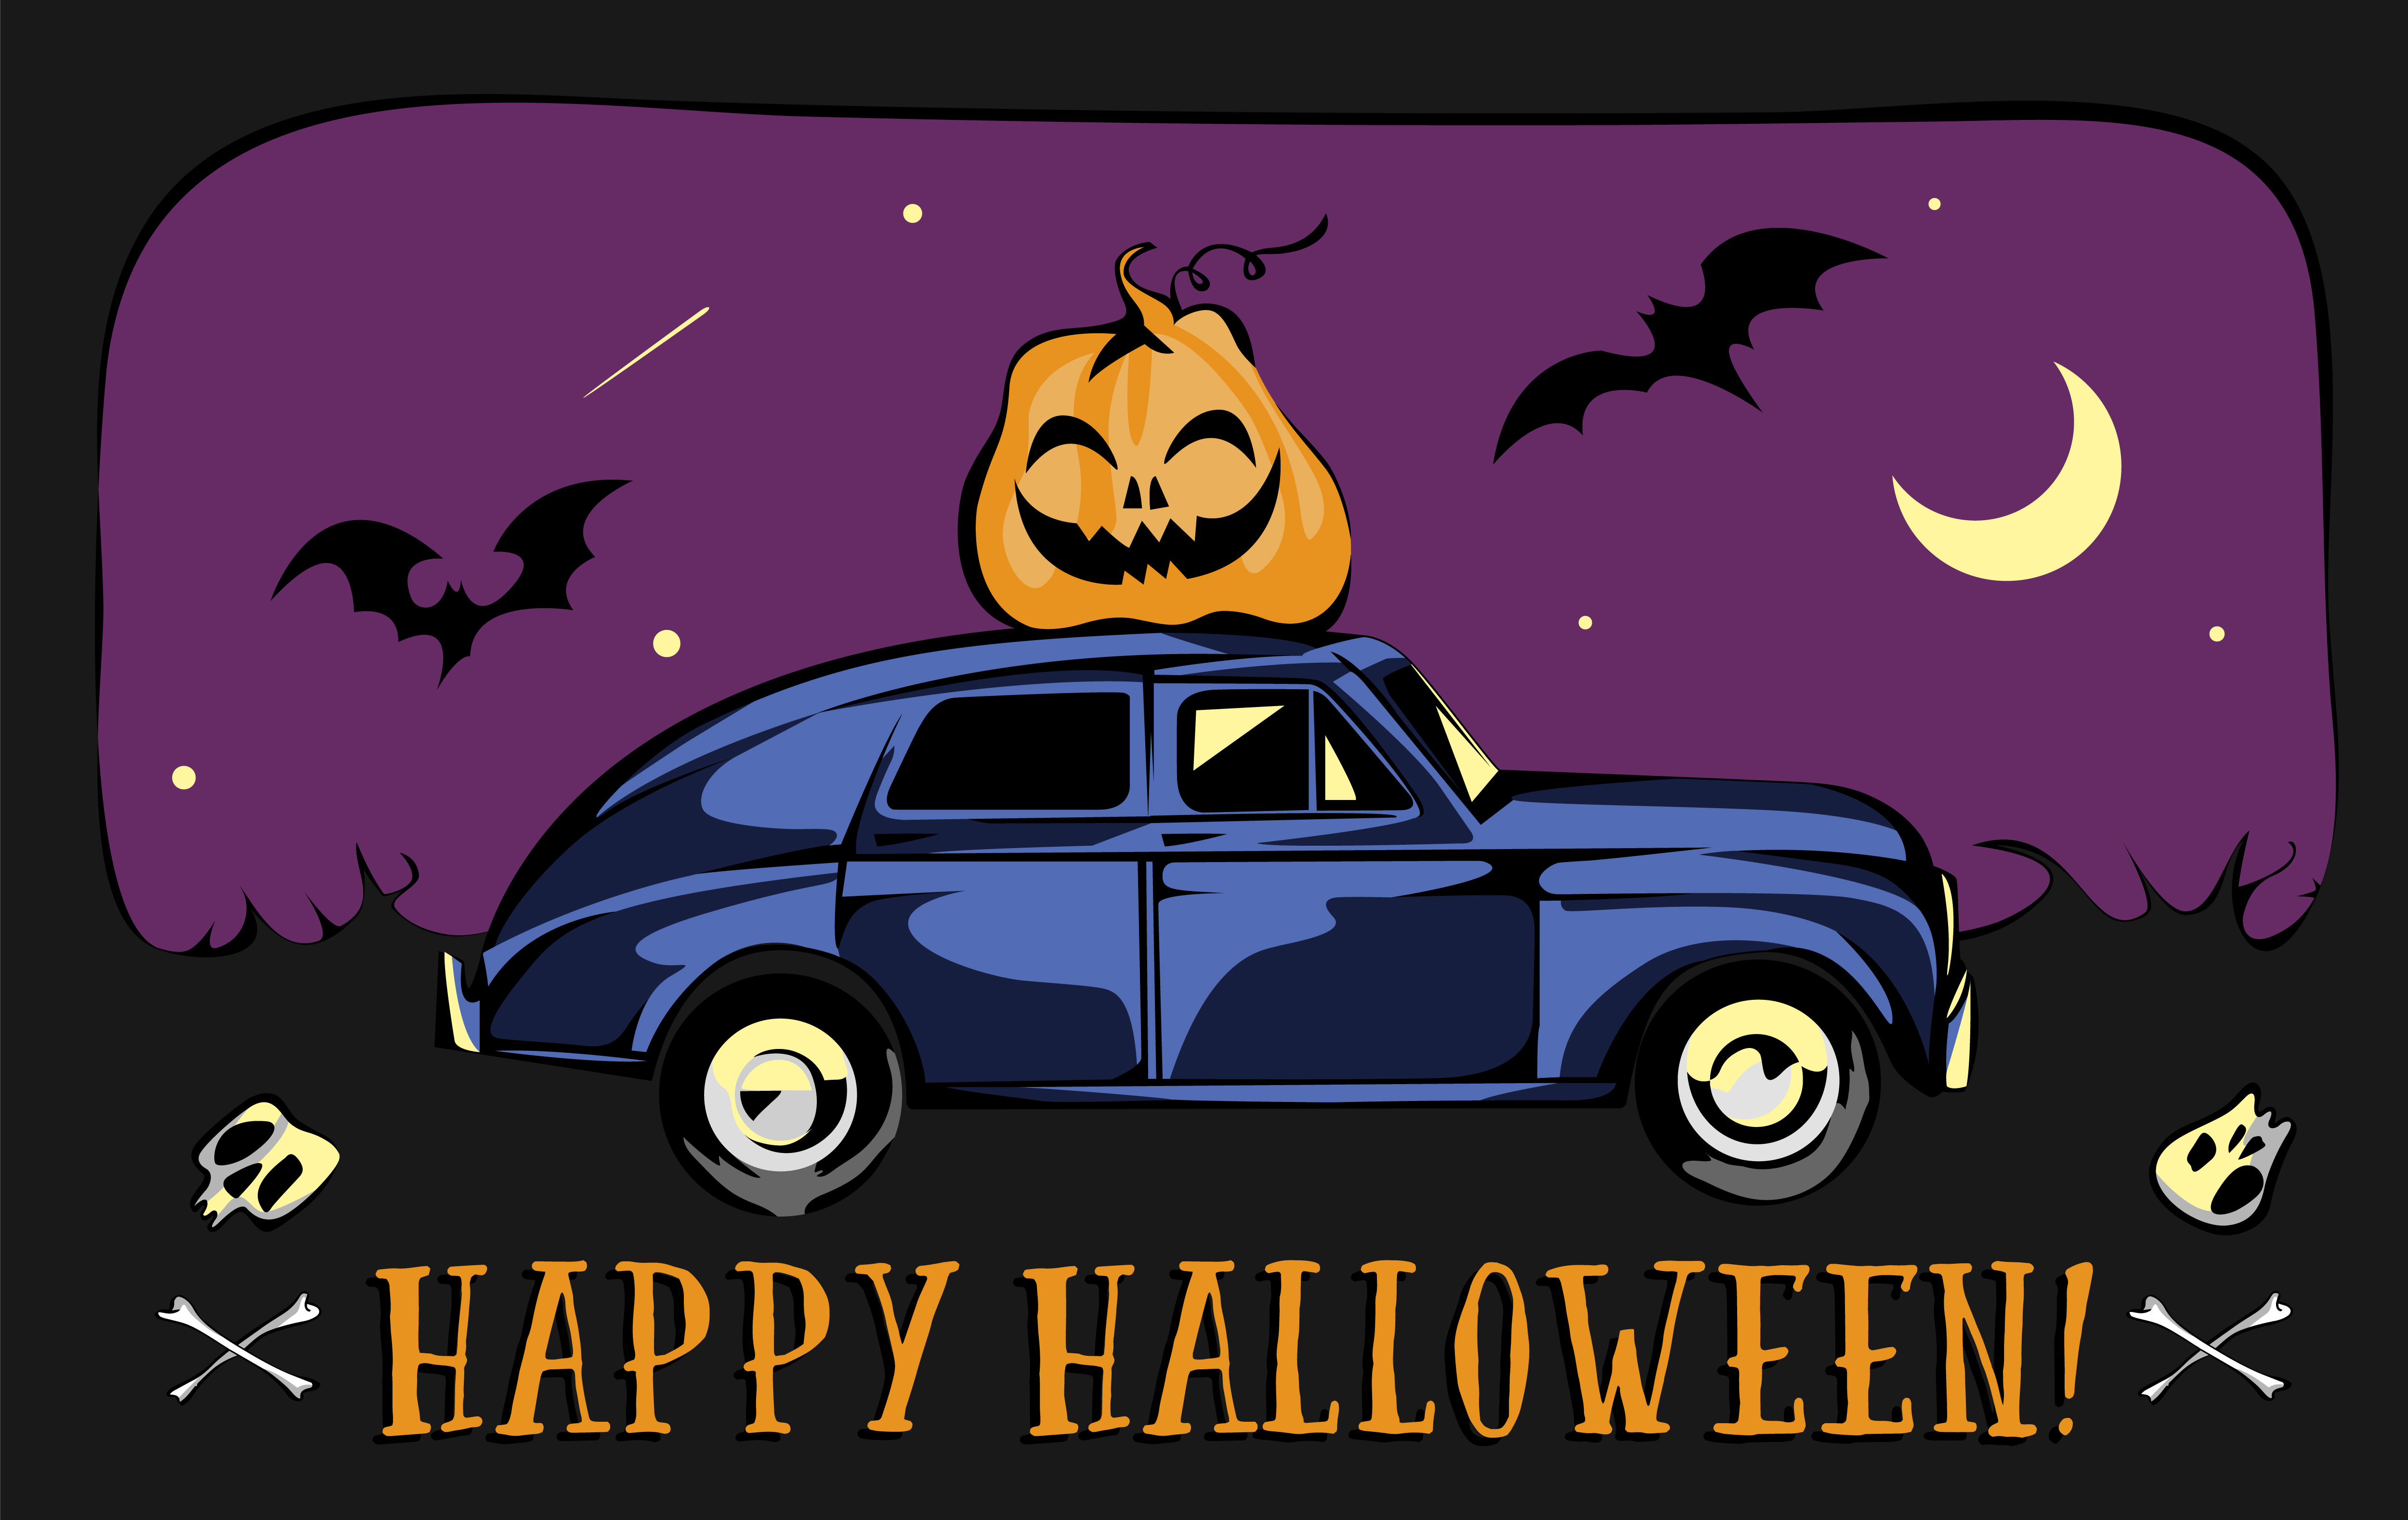 Halloween Car Accessories To Decorate Your Ride Roadloans